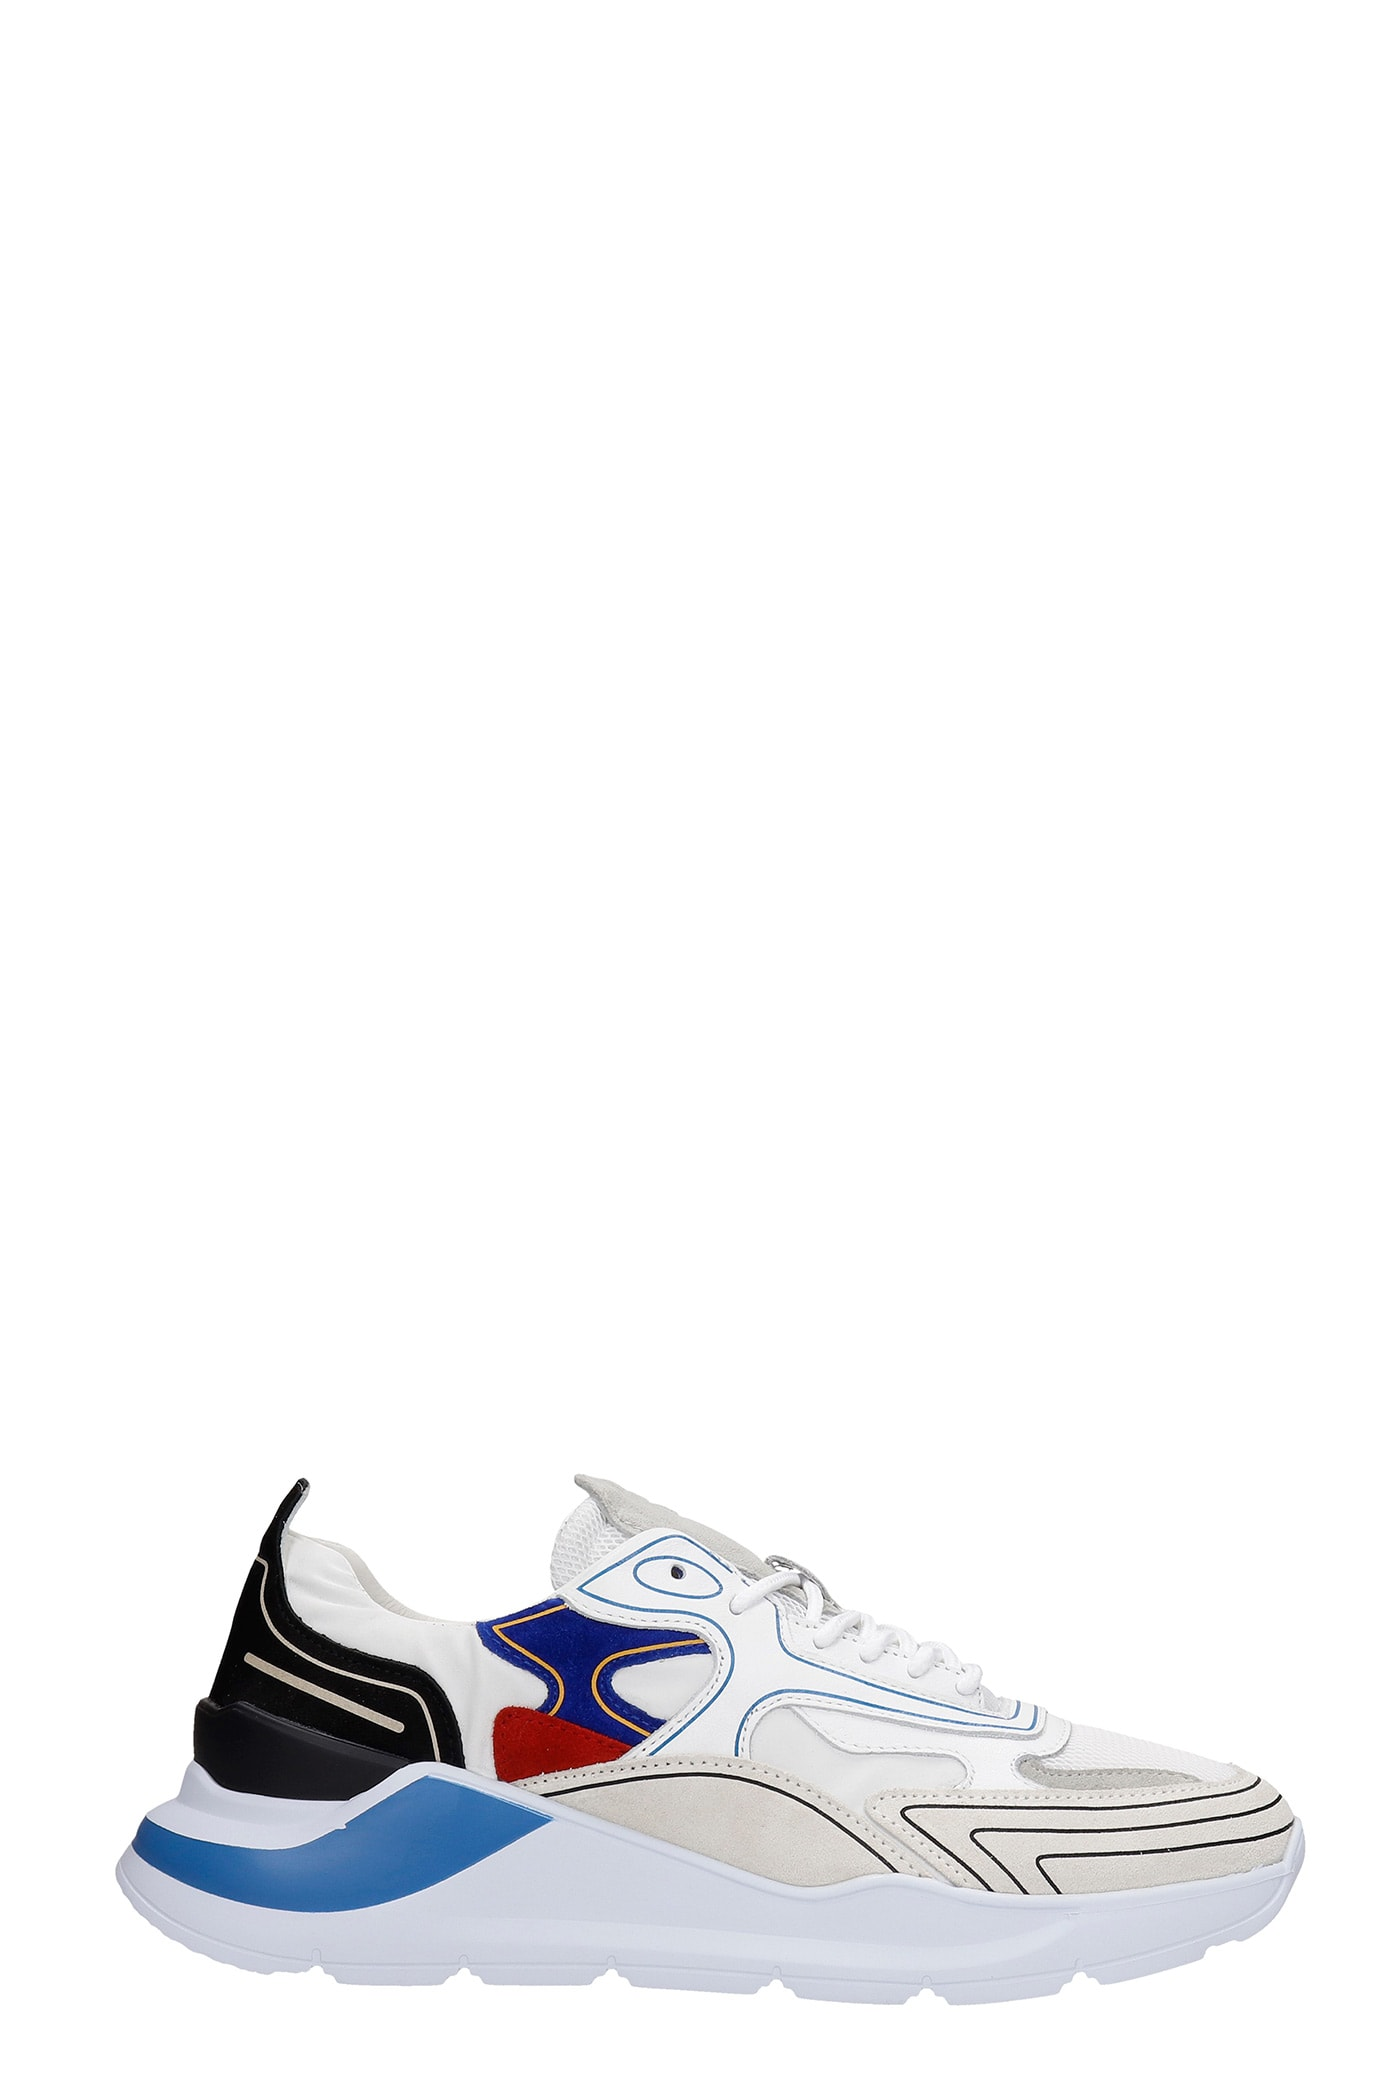 Fuga Sneakers In White Suede And Leather